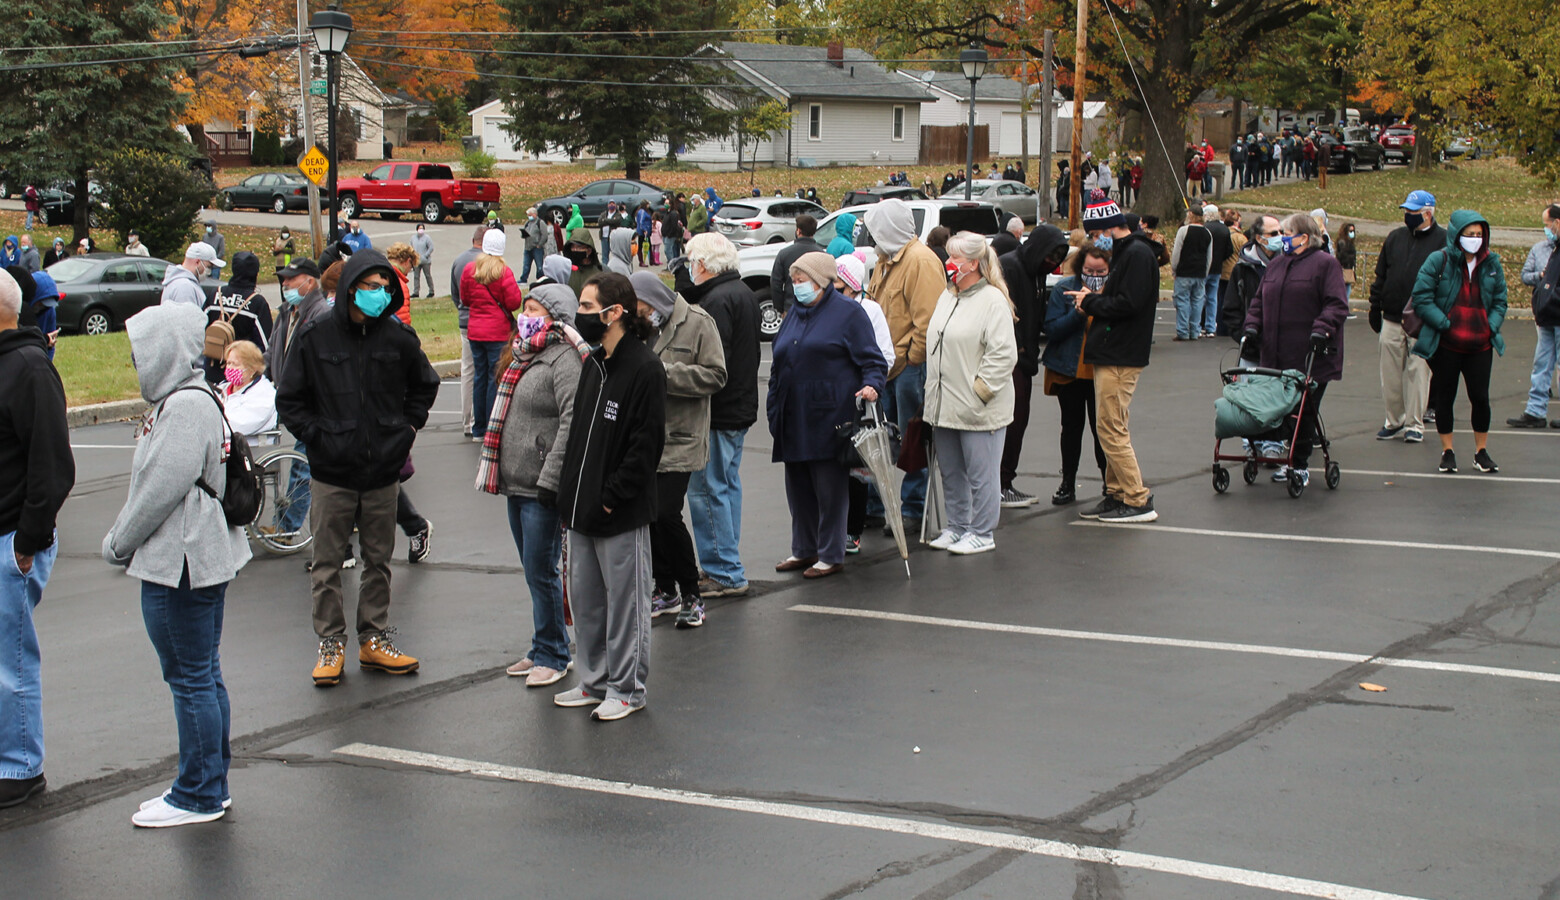 More than 400 people wait in line to vote early in Indianapolis. Indiana voters cannot ask state courts to extend polling hours on Election Day if there are problems at the polls, according to a 2019 Indiana law. (Lauren Chapman/IPB News)